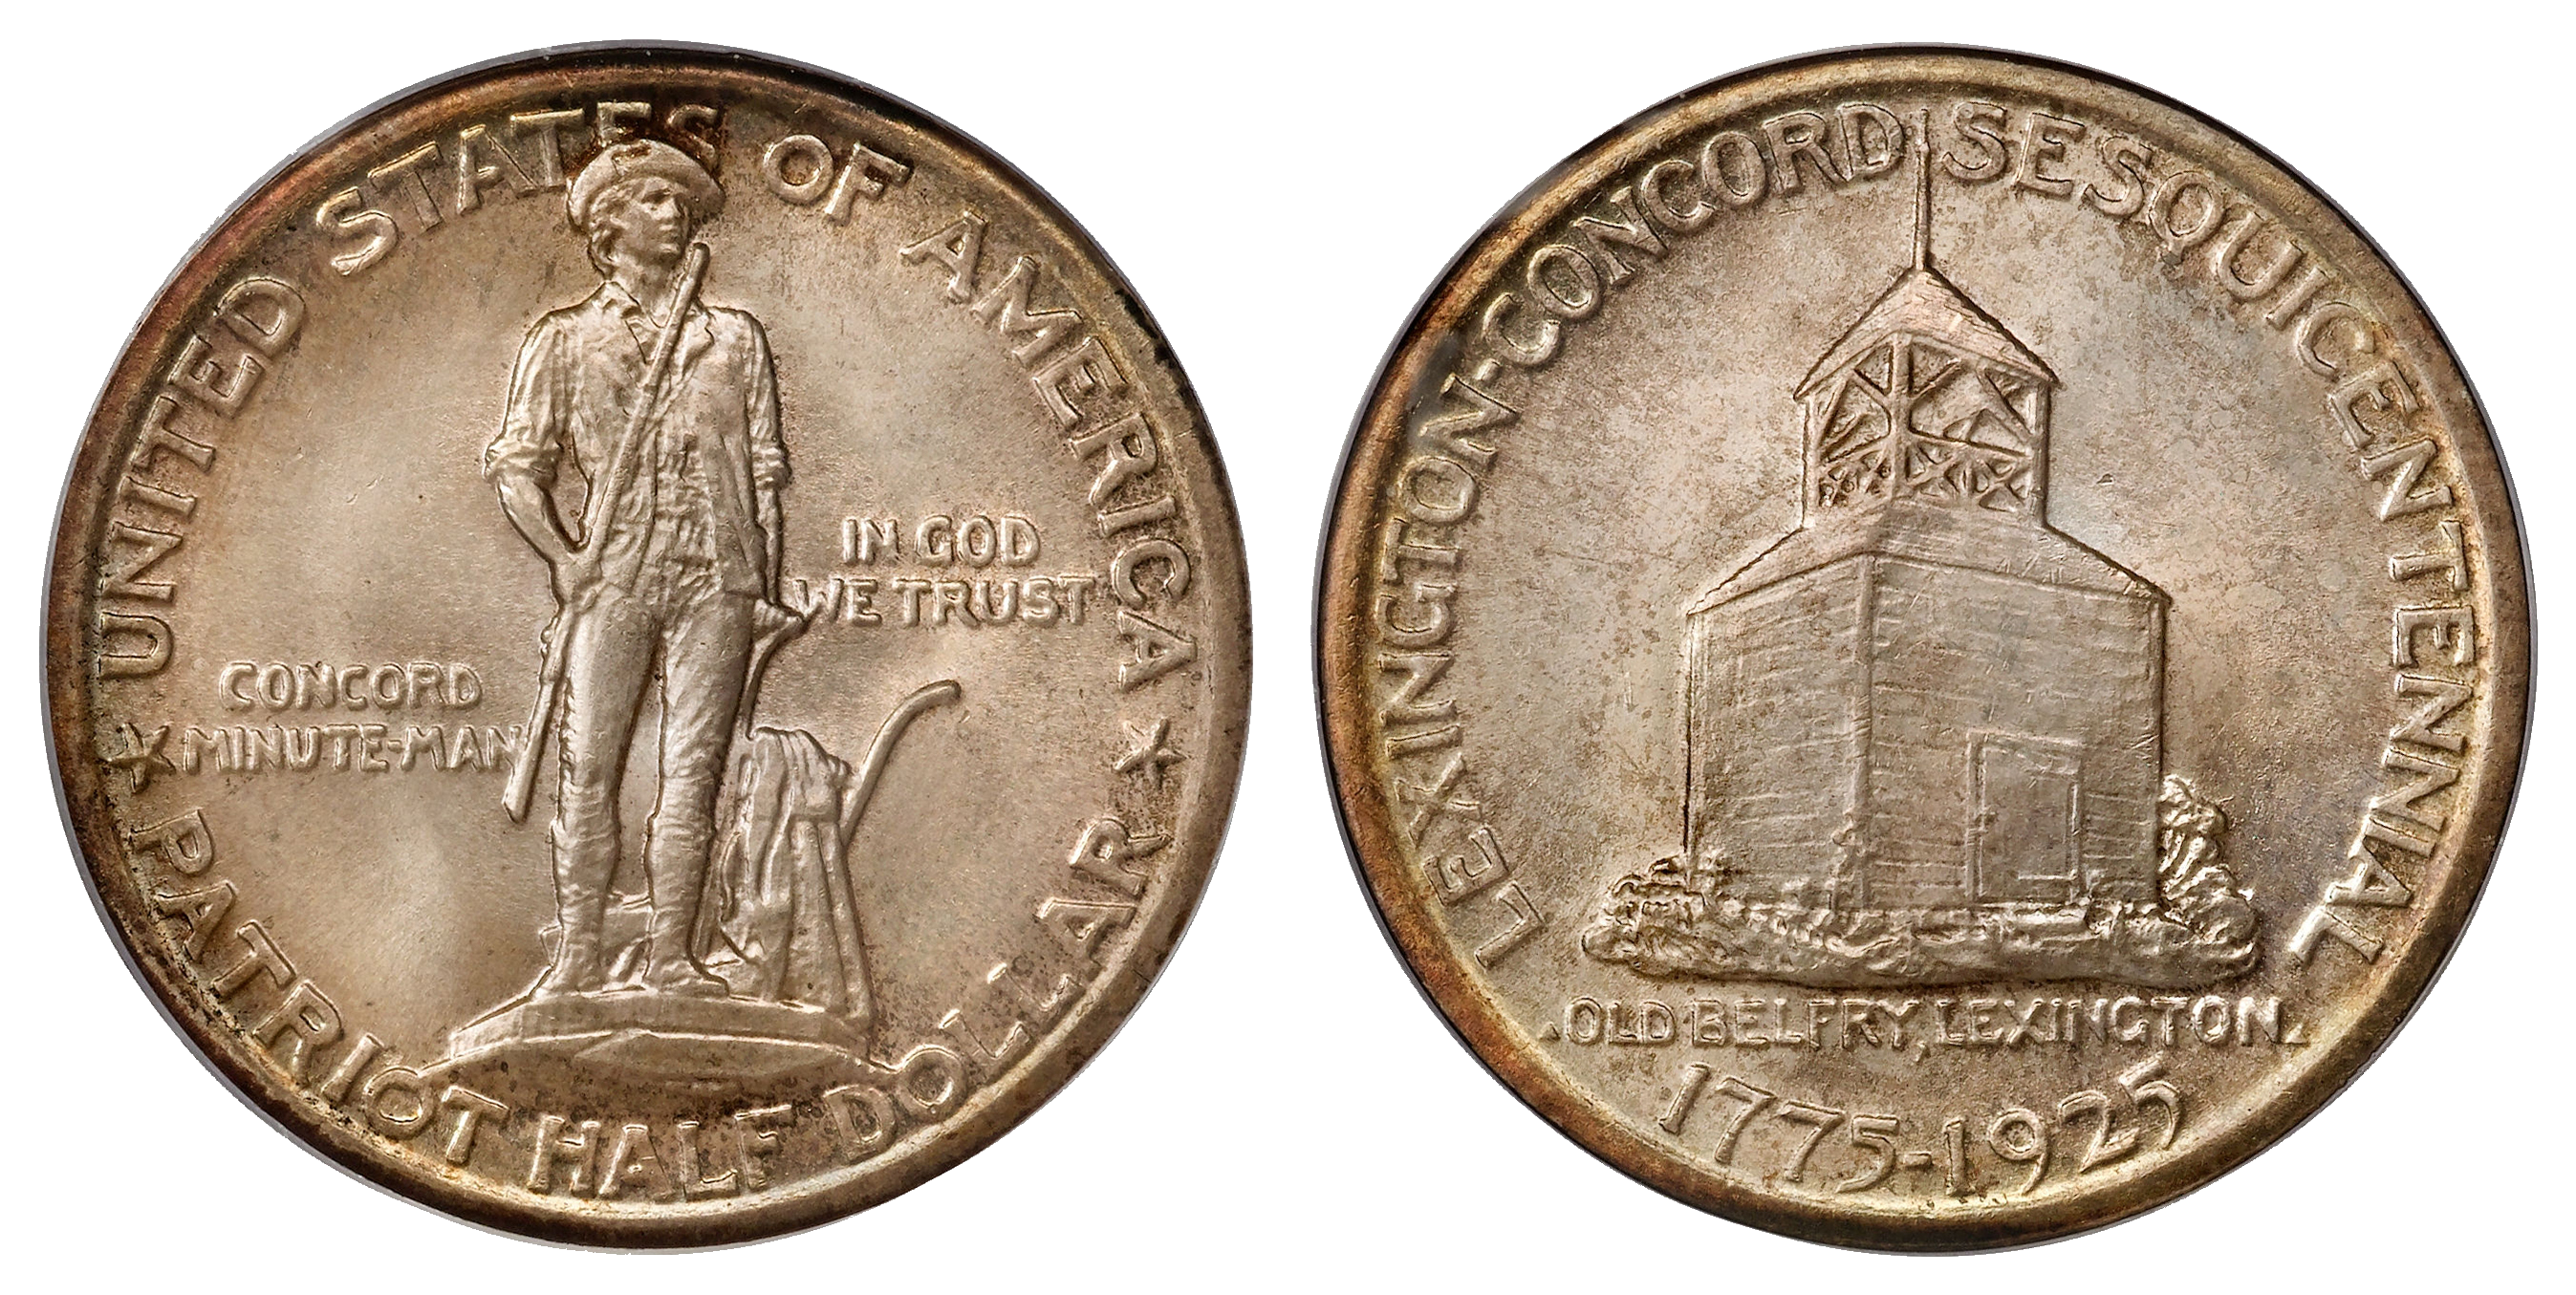 United States 1925 half-dollar commemorative coin for the 150th anniversary of the Battles of Lexington and Concord.